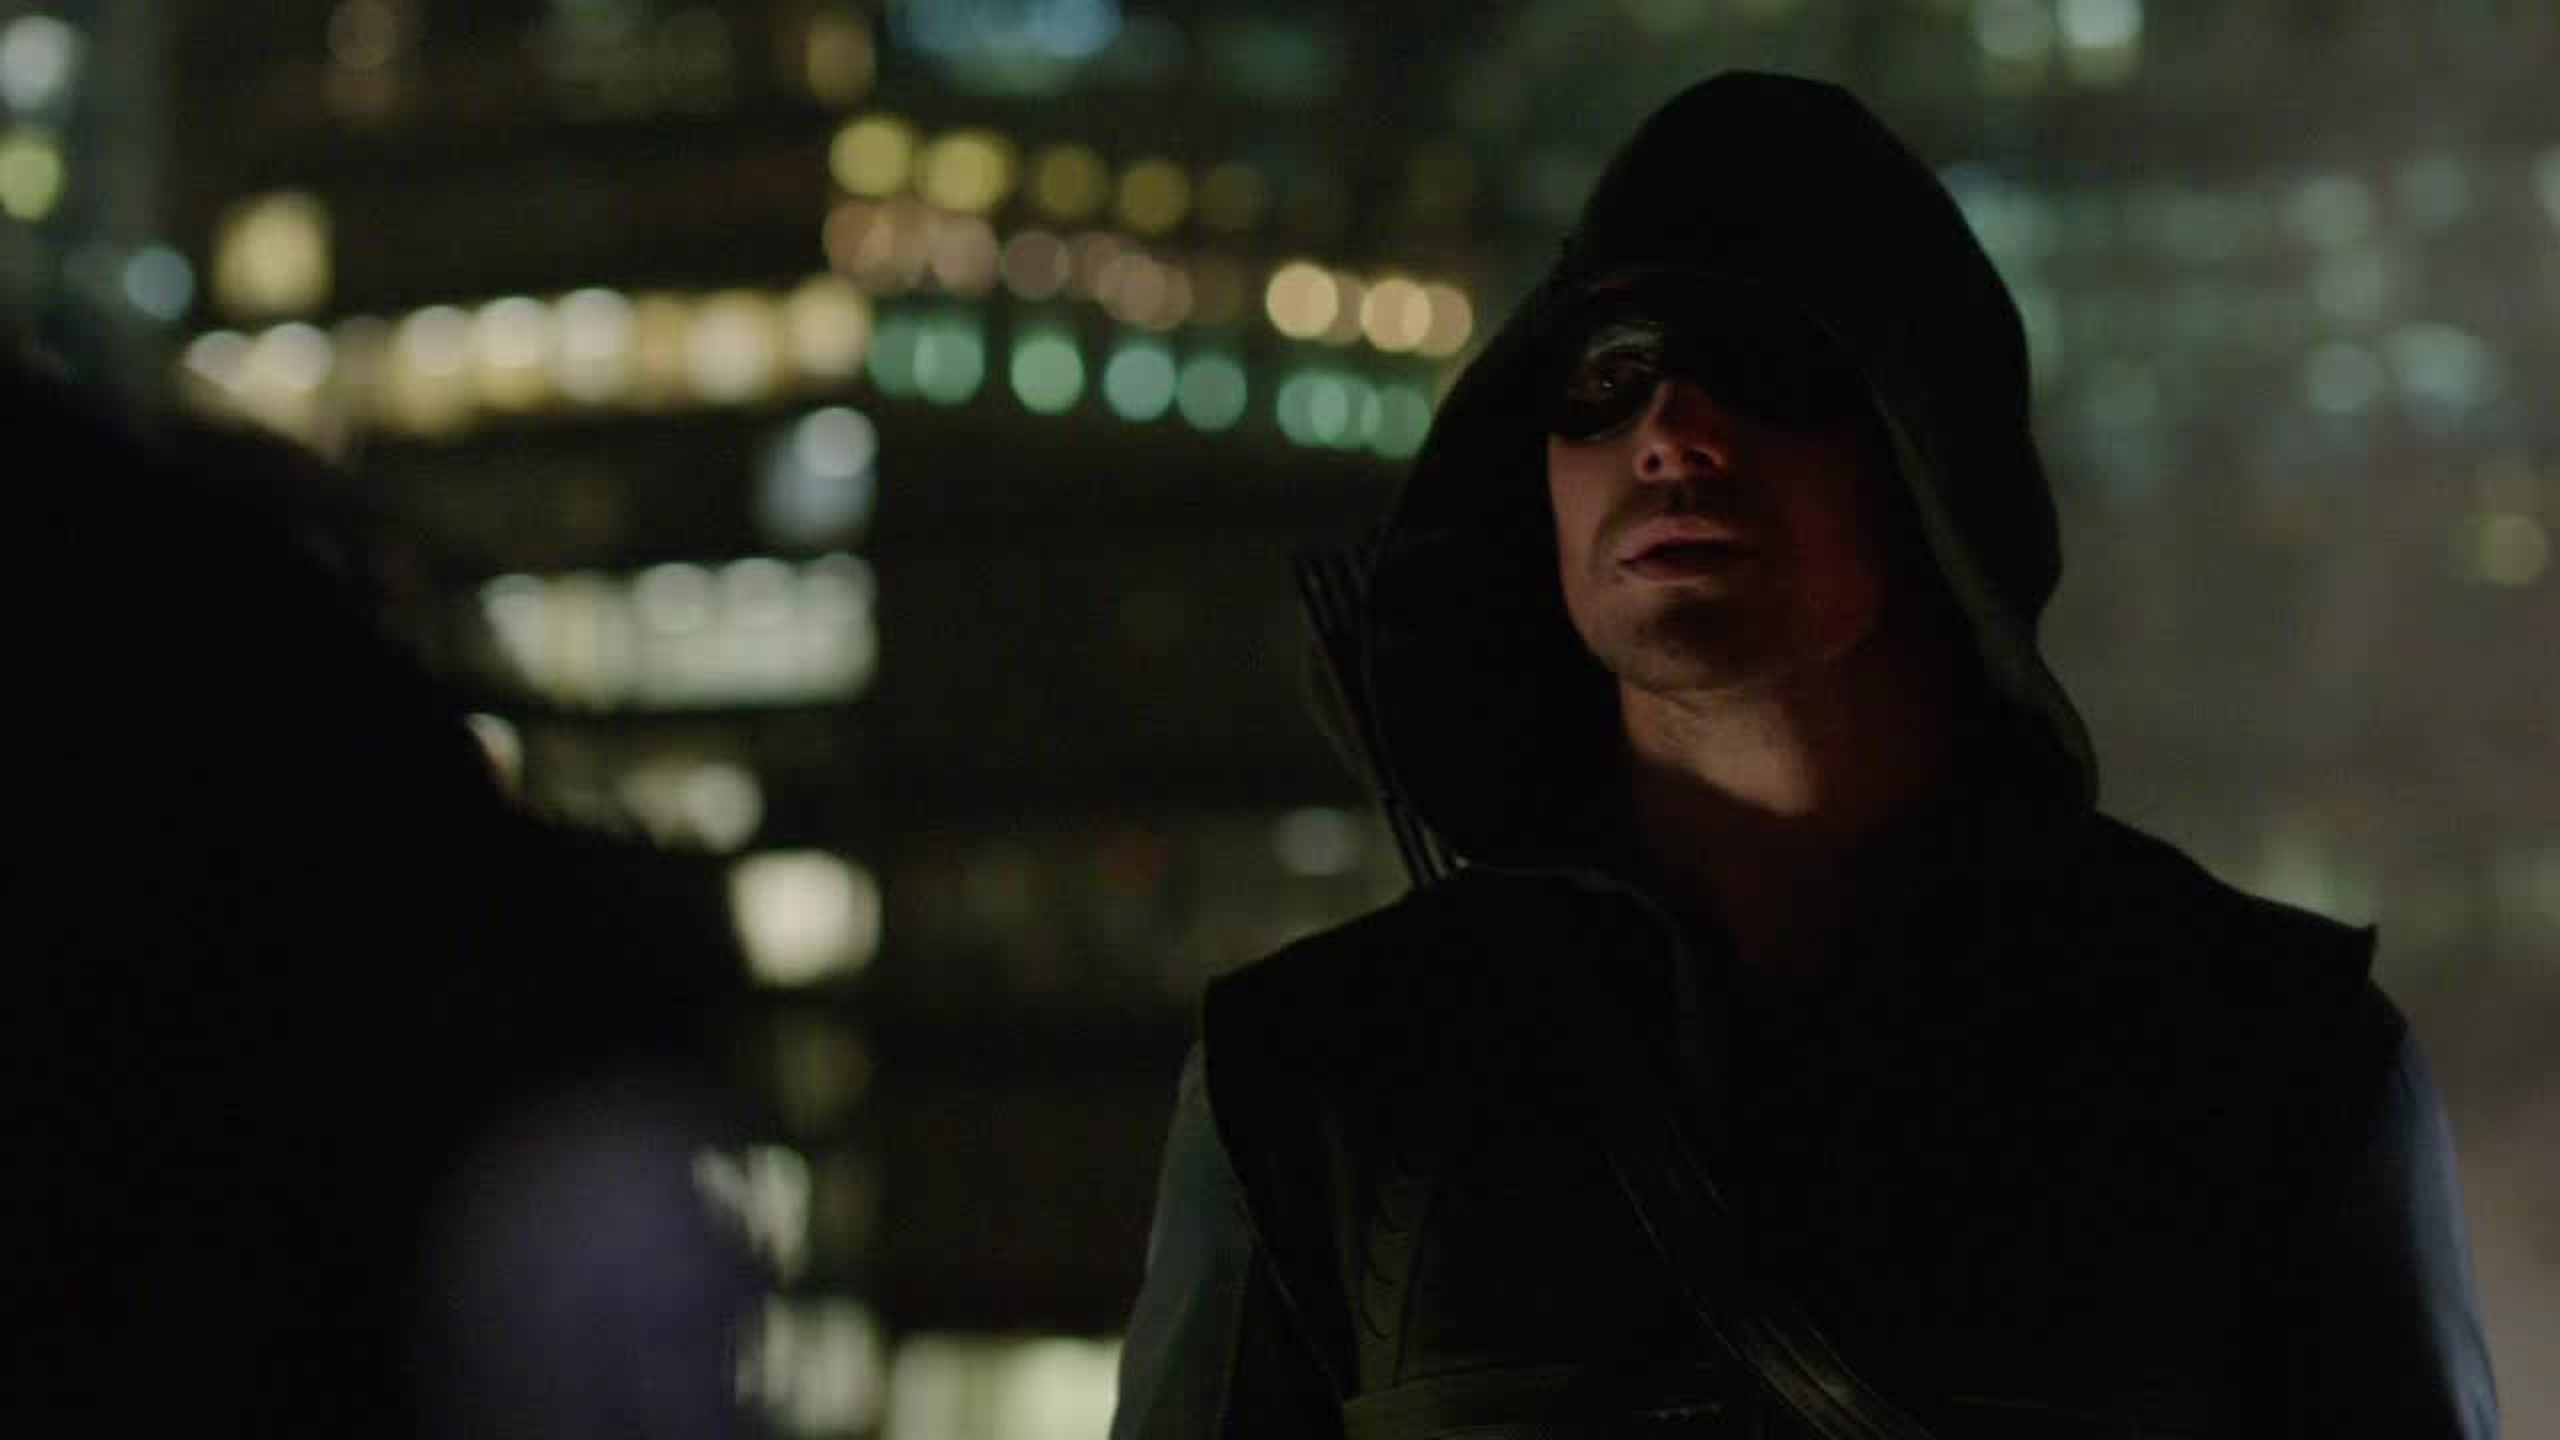 but how does no one notice that Oliver is the arrow, even with a mask and hood he is recognizable damn, plus he's always late and lying so are the other people idiot or is it me